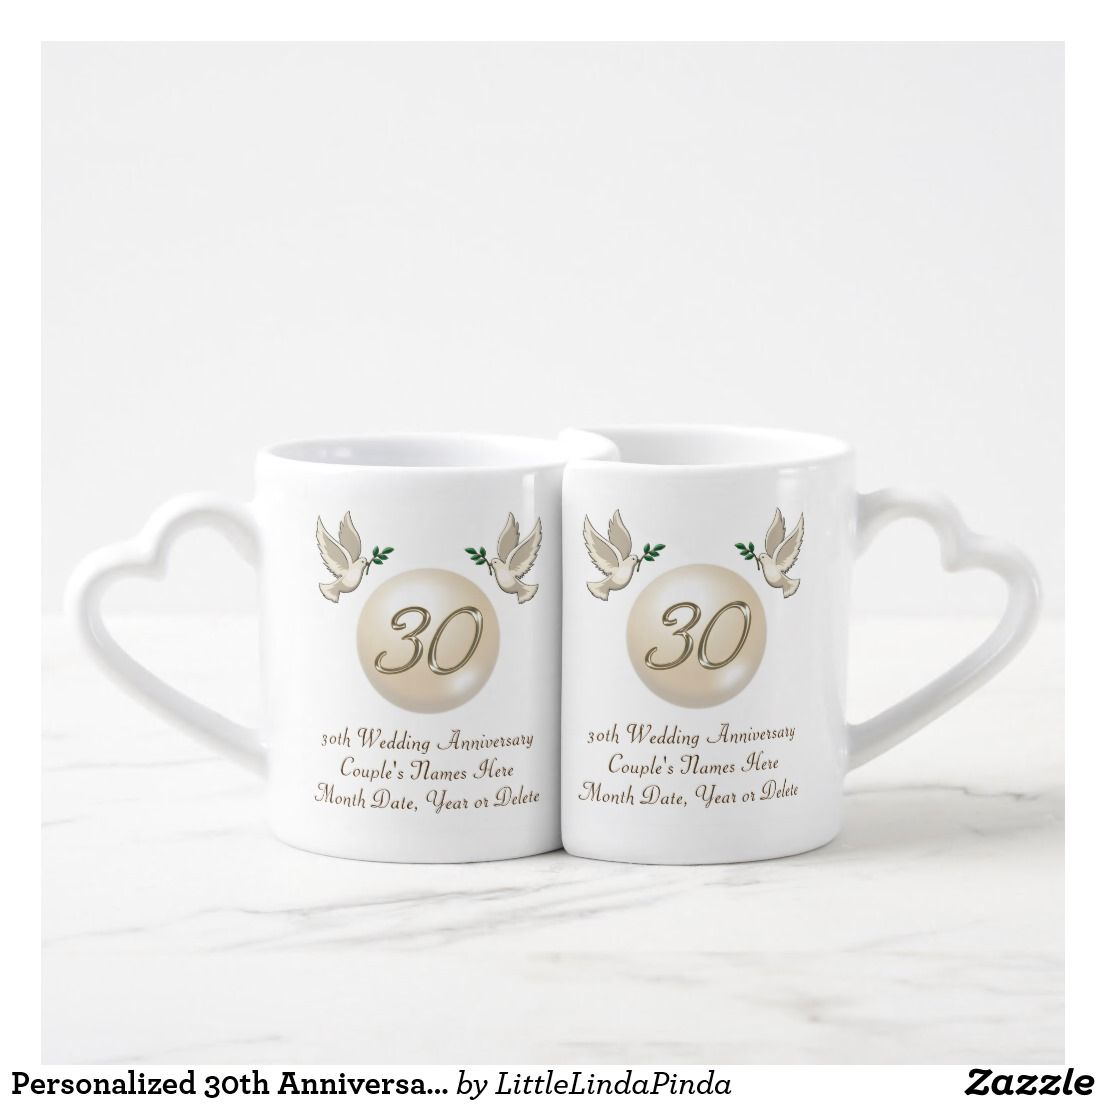 Personalized 30th Anniversary Gifts For Friends Coffee Mug Set